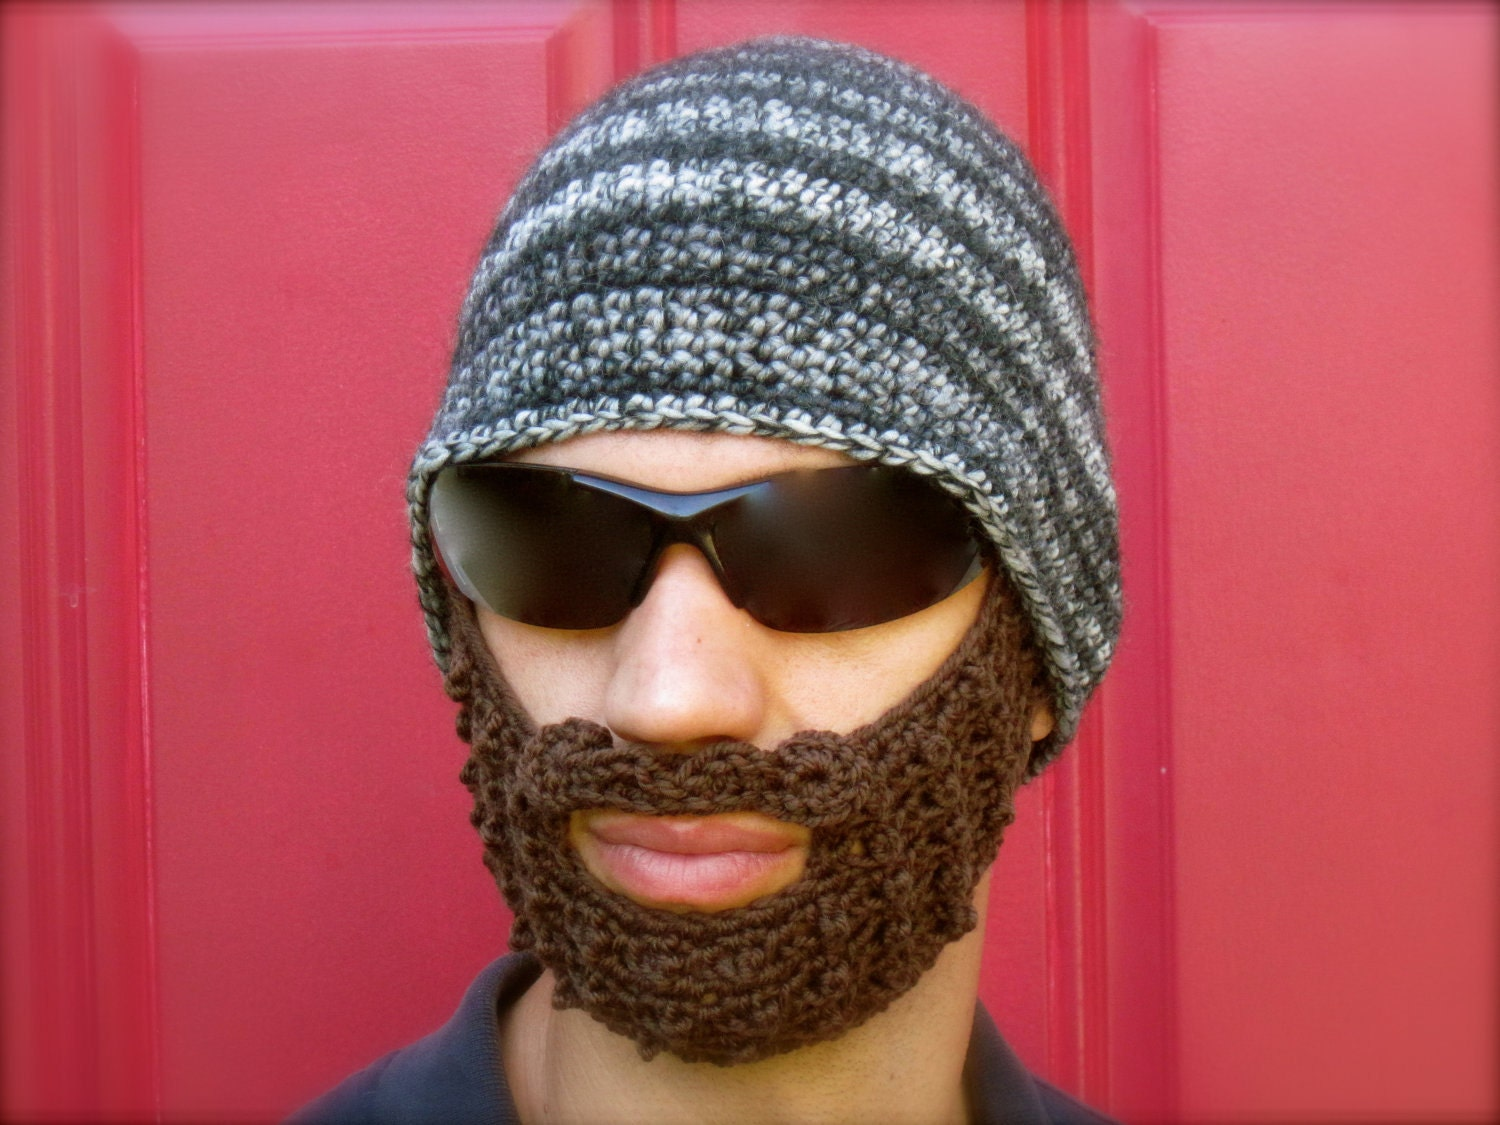 Buy low price, high quality wool hat beard with worldwide shipping on angrydog.ga